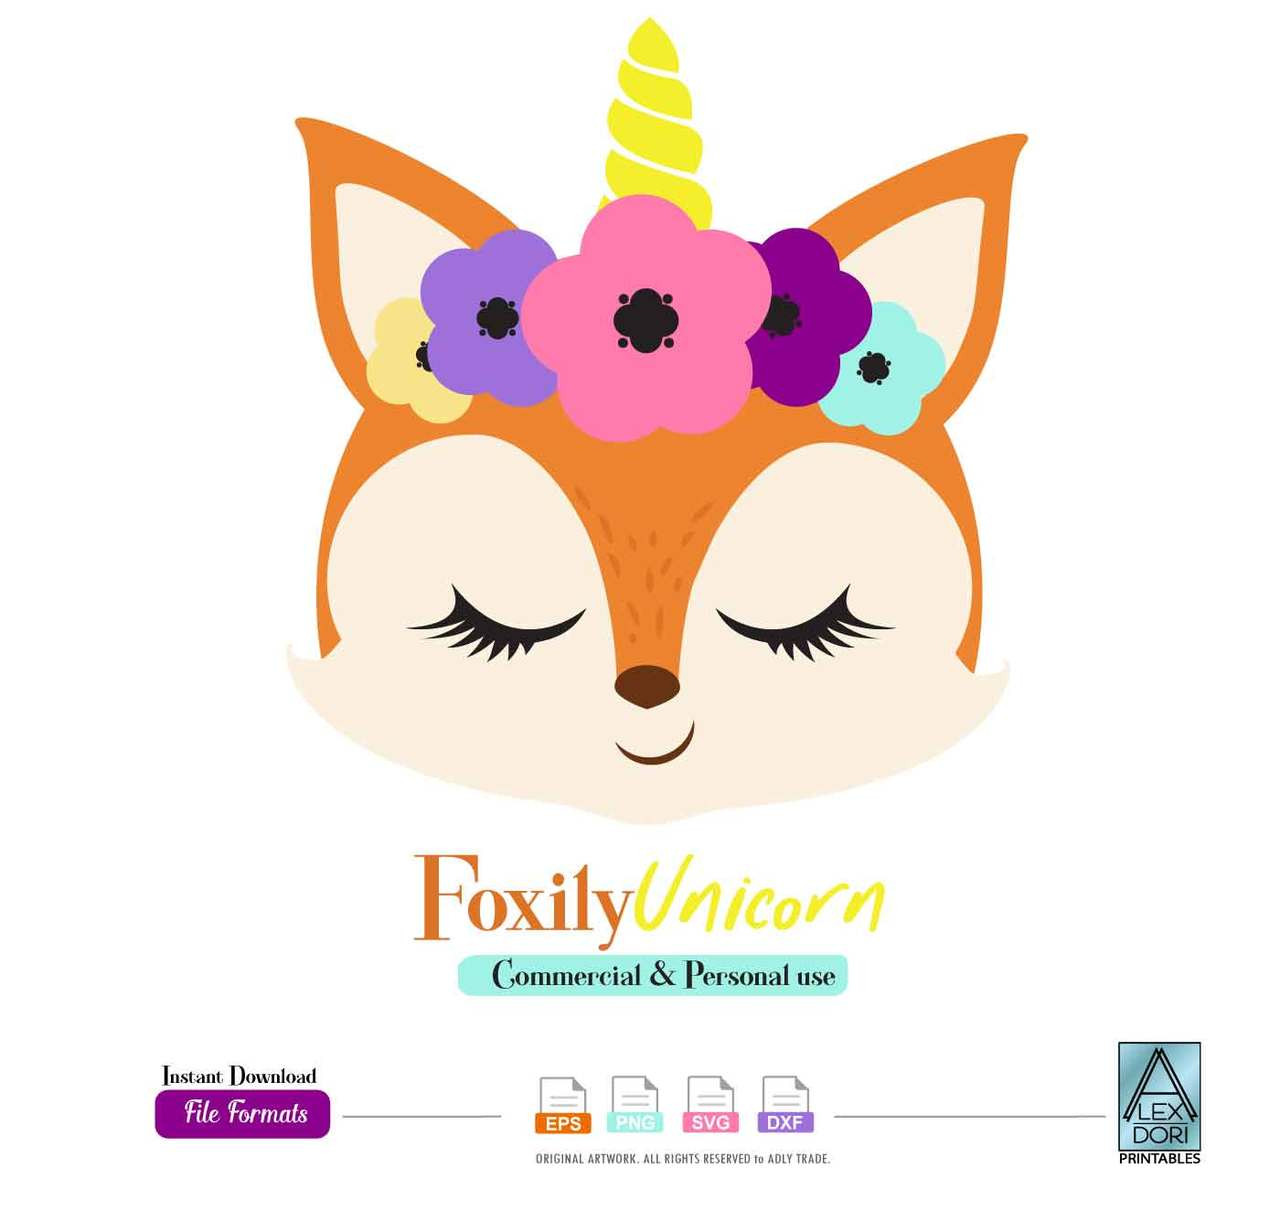 photo regarding Fox Printable identified as Fox Unicorn Clip artwork, Fox printable document,minimize Cricut, Silhouette. Nursery, Child Shower,t-blouse,birthday,drop obtain professional employ the service of,svg, png